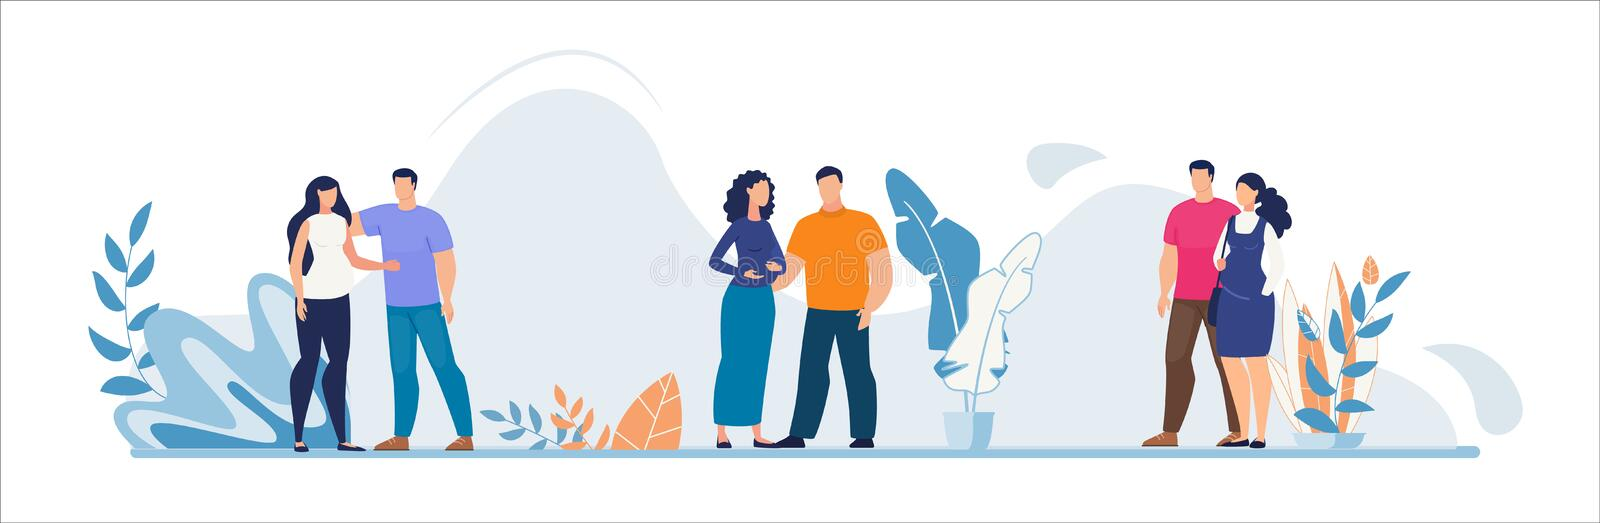 Happy Man and Pregnant Woman Wait for Childbirth. Married Couple Cartoon People Characters Standing Together. Pregnancy, Care and Love. Family Addition. Future vector illustration